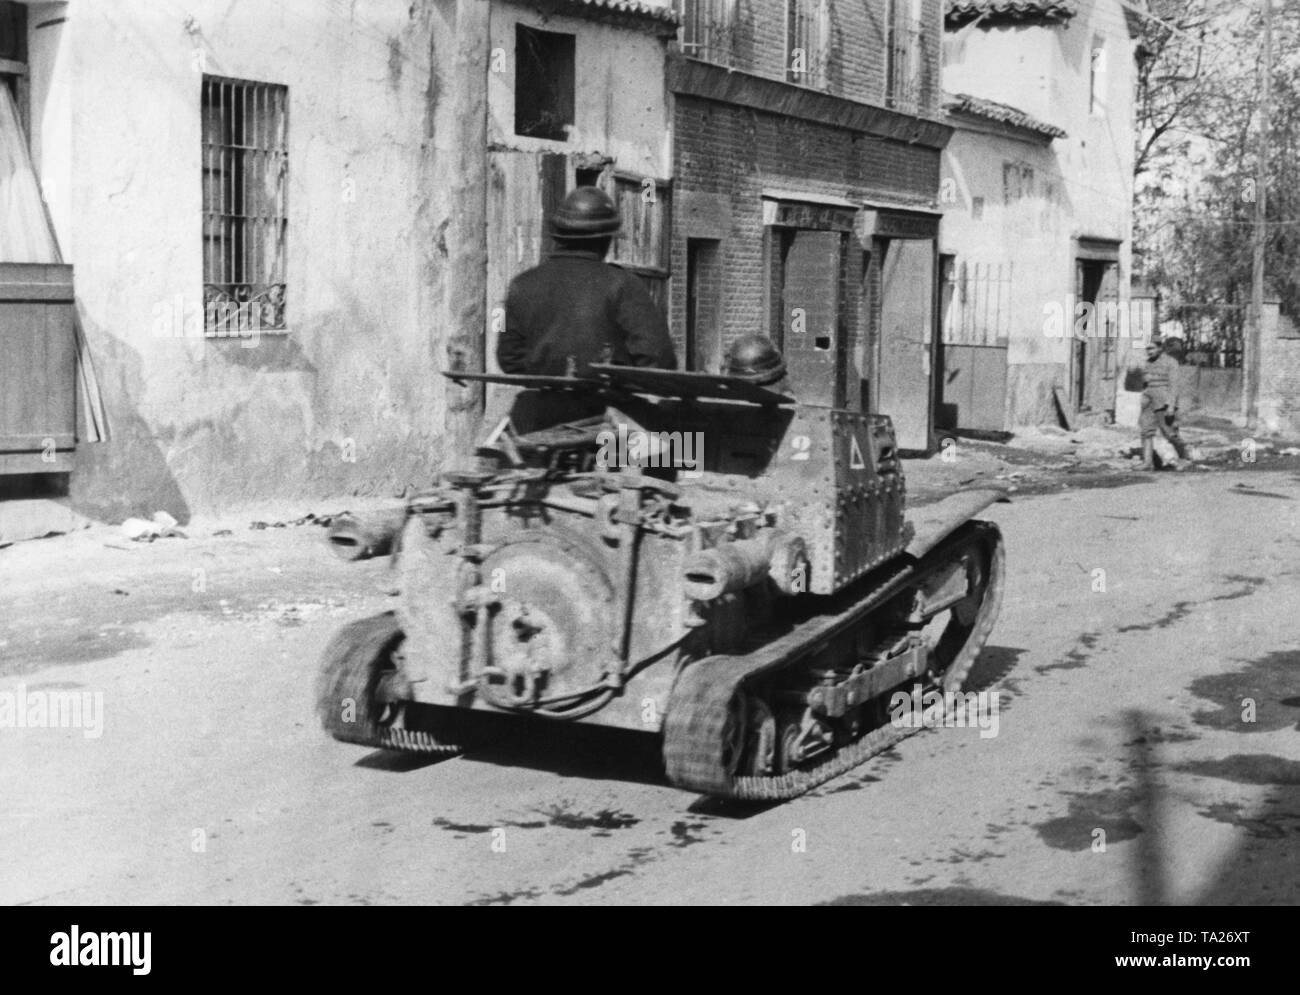 Photo of the rear of an Italian two-man tank (L3 / 33, Carro Veloce 33) of the Corpo Truppe  Volontarie (CTV), passing through the center of Villaverde del Rio, north of Seville. The crew wears leather helmets. Stock Photo